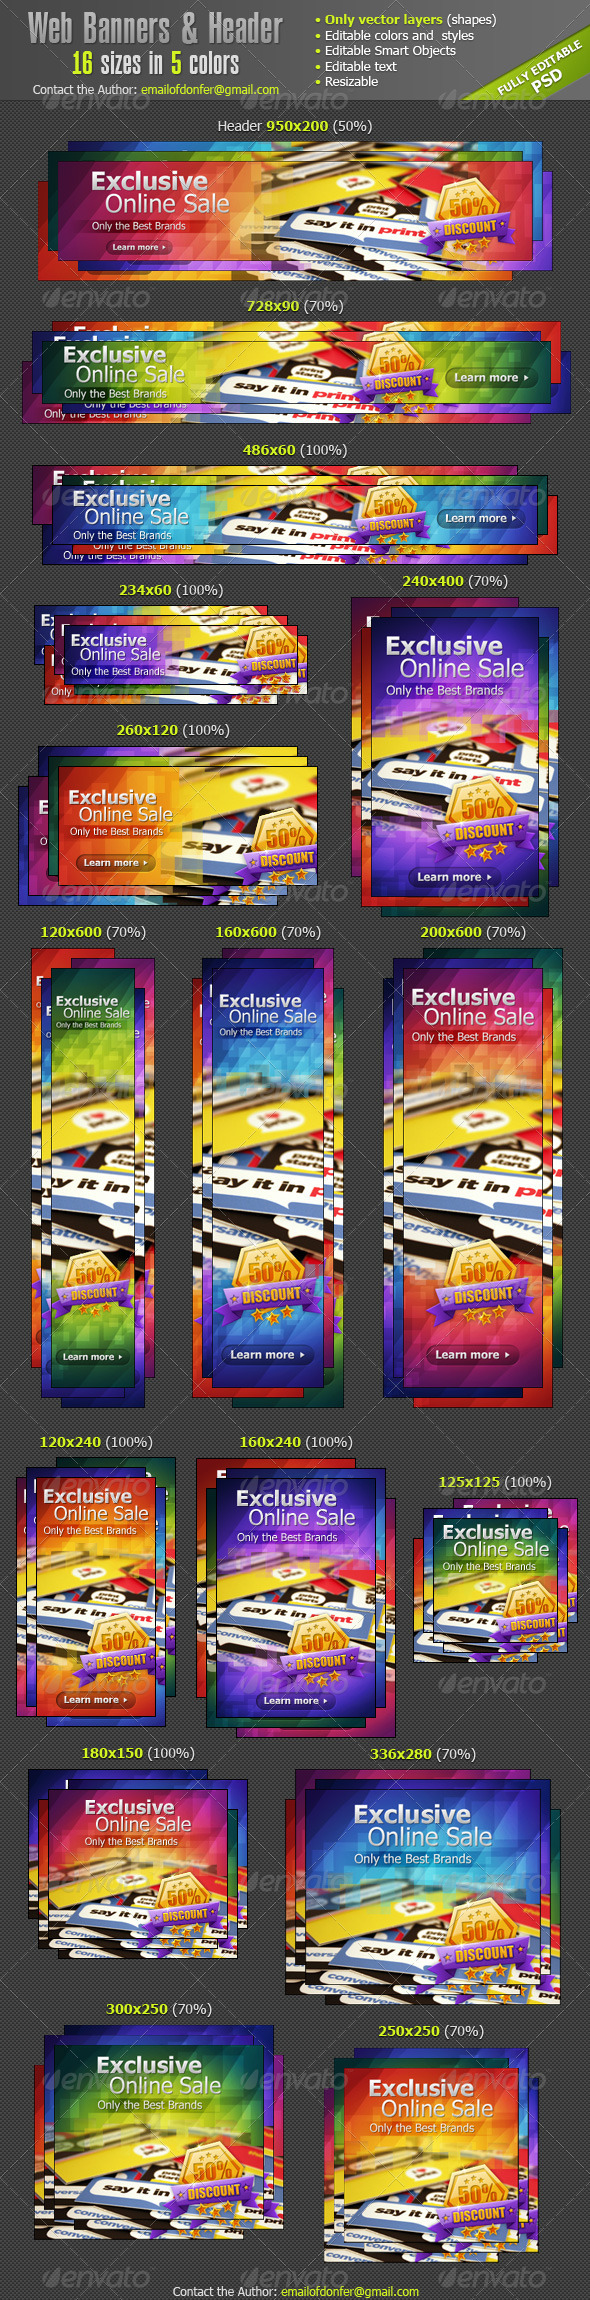 Graphic River Web Banners Ads & Website Header Web Elements -  Banners & Ads 908702